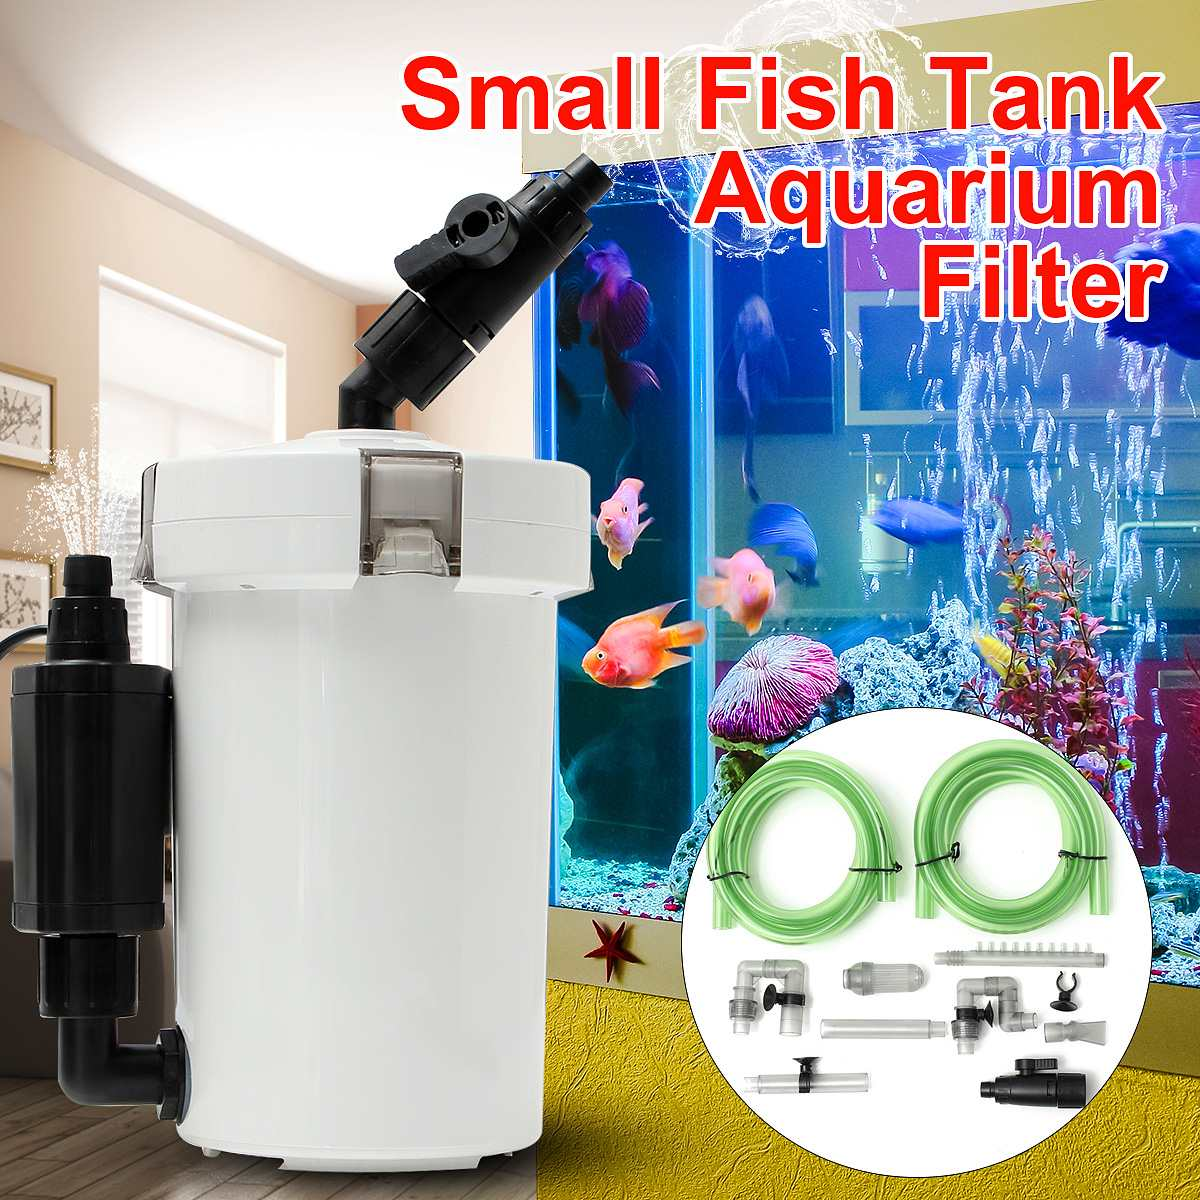 HW-602B Aquarium Fish Tank External Ultra-quiet Canister Filter Table Top Fish Tank Outer Filtration System 220-240V 6W 400l/hHW-602B Aquarium Fish Tank External Ultra-quiet Canister Filter Table Top Fish Tank Outer Filtration System 220-240V 6W 400l/h